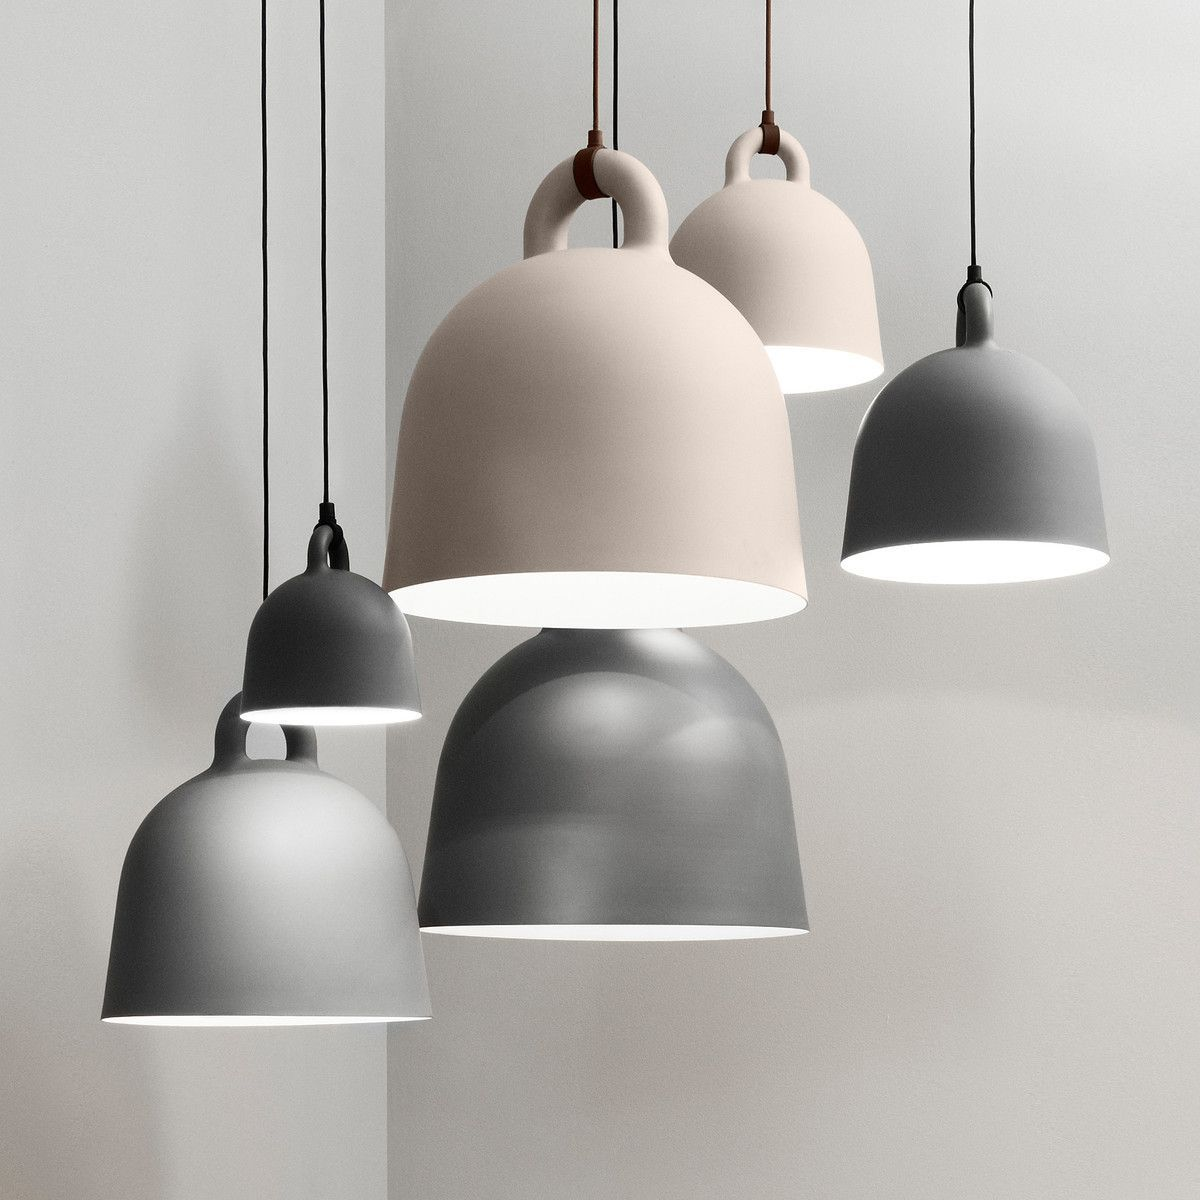 The Expression Of The Bell Pendant Lamp Is Robust The Form Is Simple With Its Industrial Yet Friendly Look Th Normann Copenhagen Bell Lamp Lamp Pendant Lamp